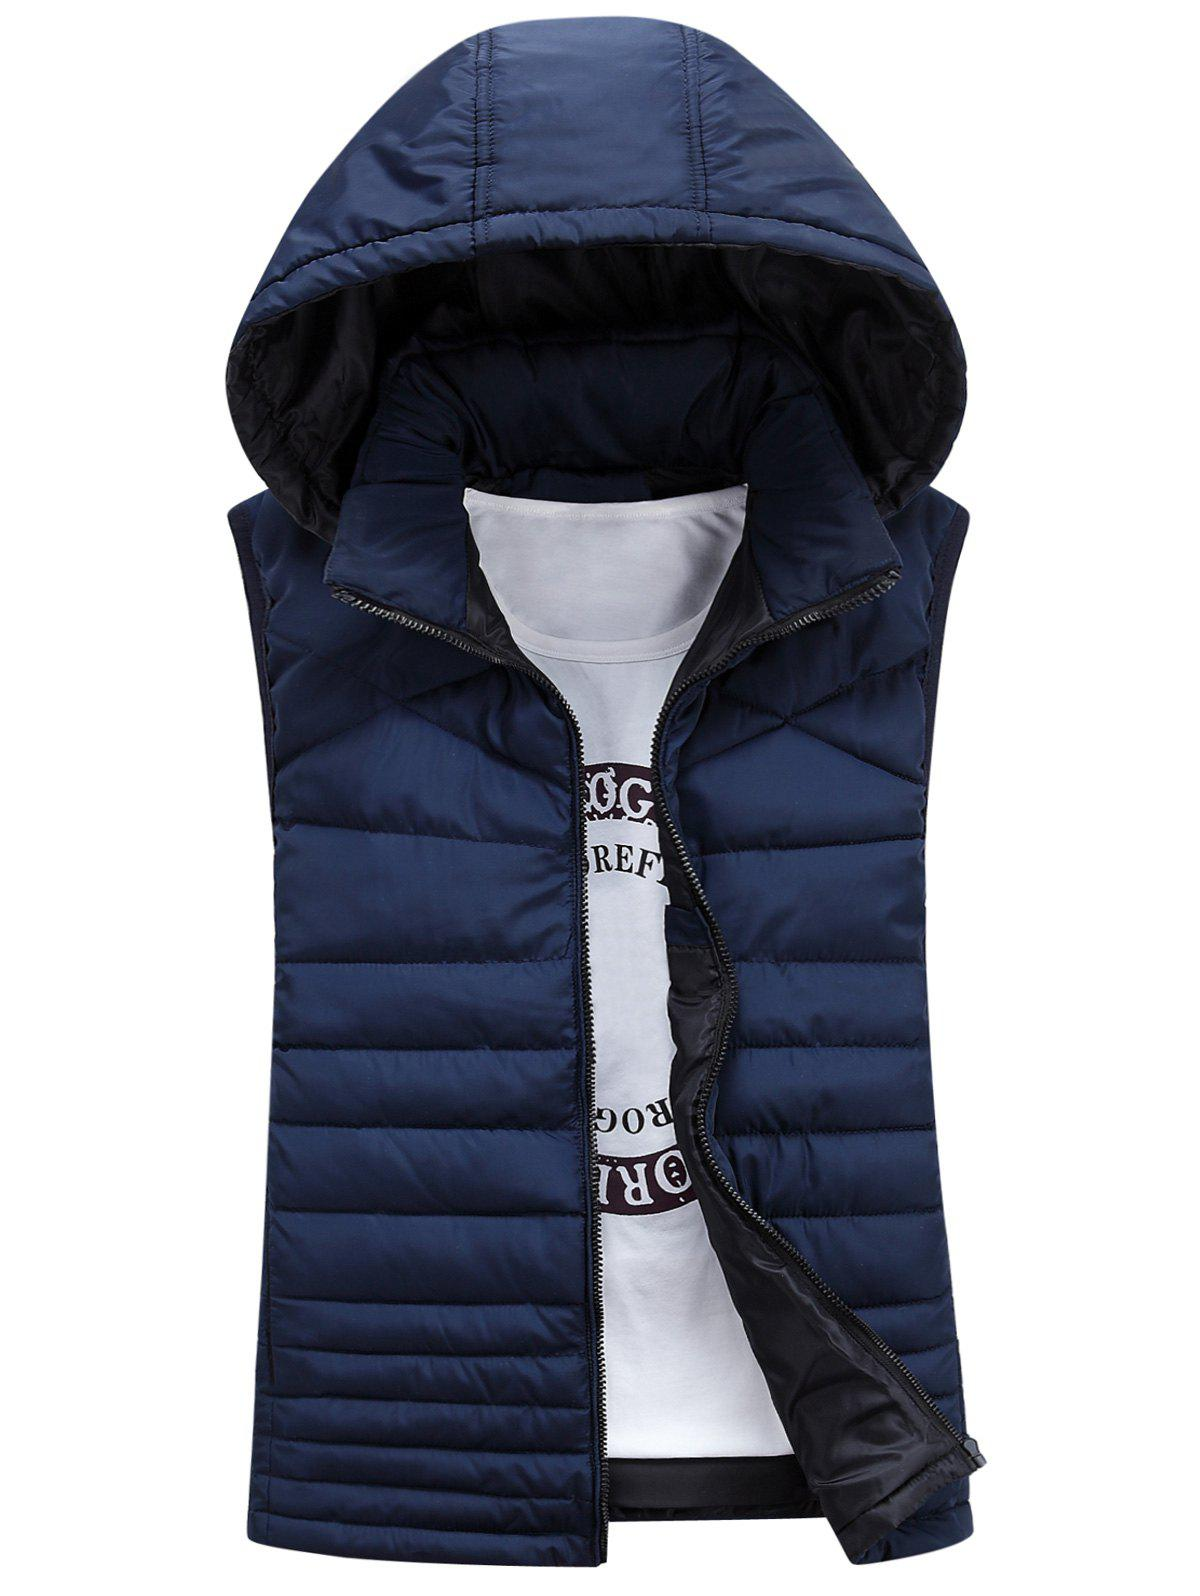 Zip Up Waistcoat rembourré à capuche détachable Cadetblue L